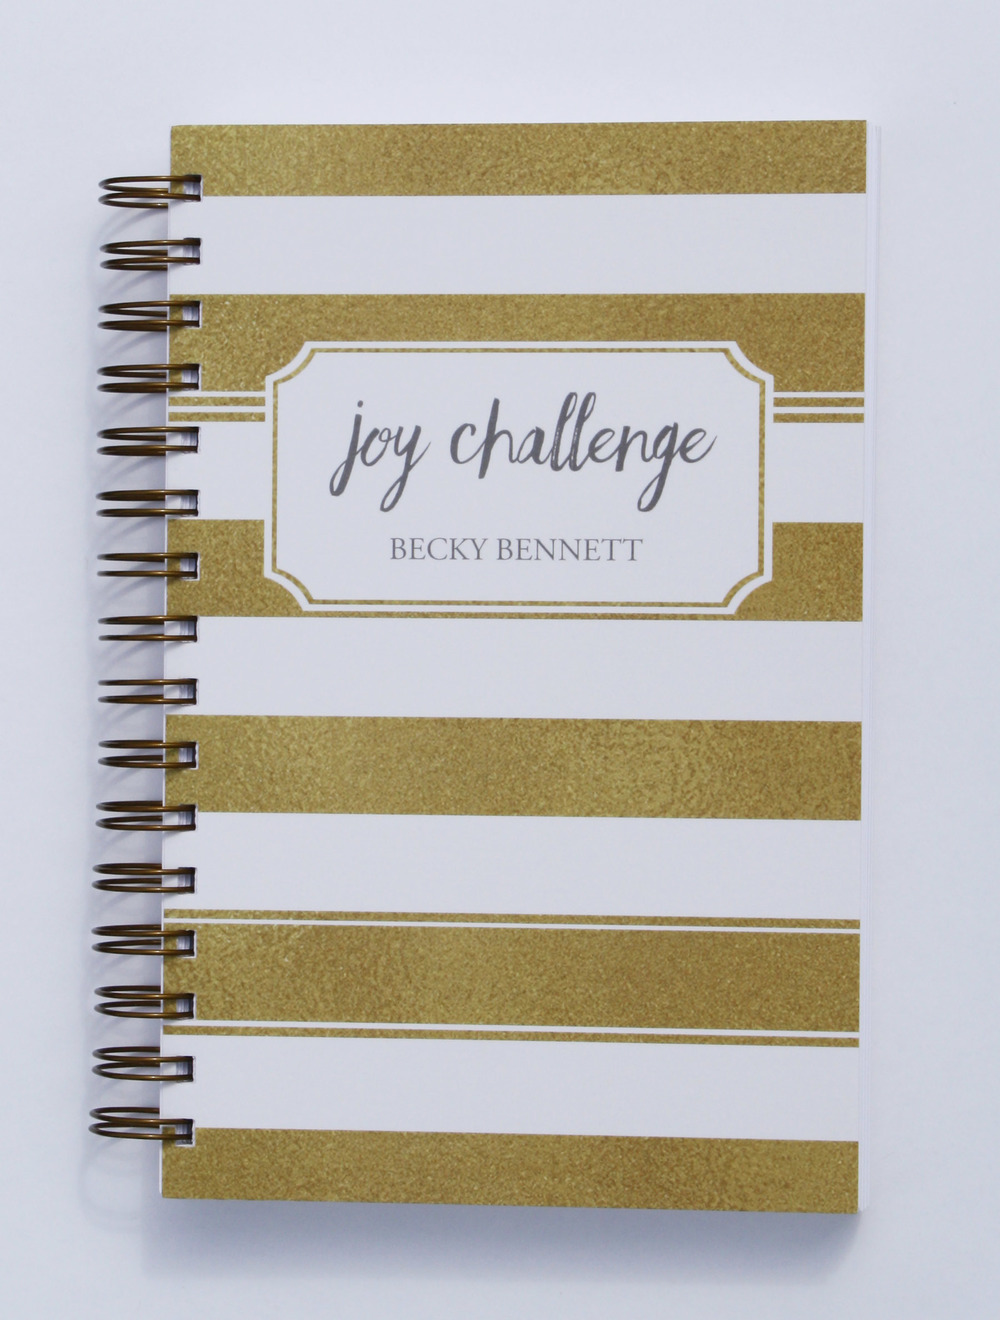 Joy Challenge_Women's Bible Study and Devotional Journal_Becky Bennett_To Choose Joy